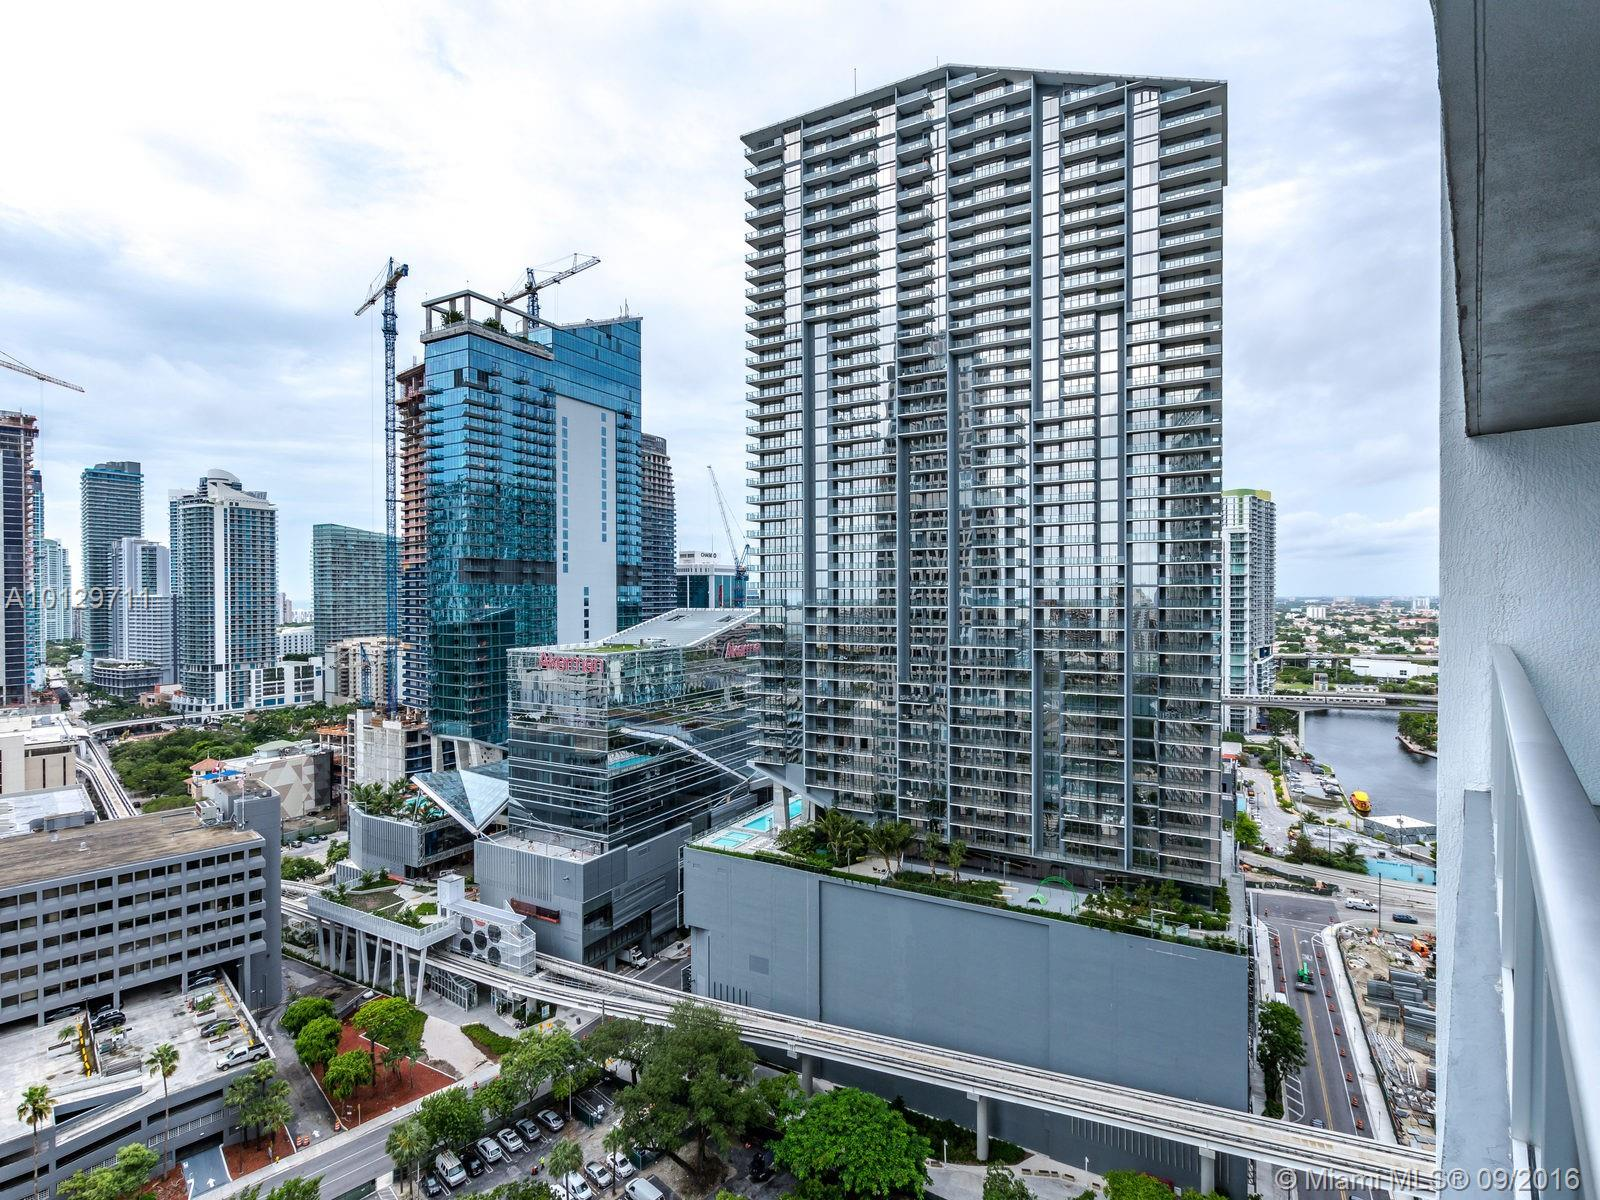 55 6th st-2610 miami-fl-33131-a10129711-Pic30